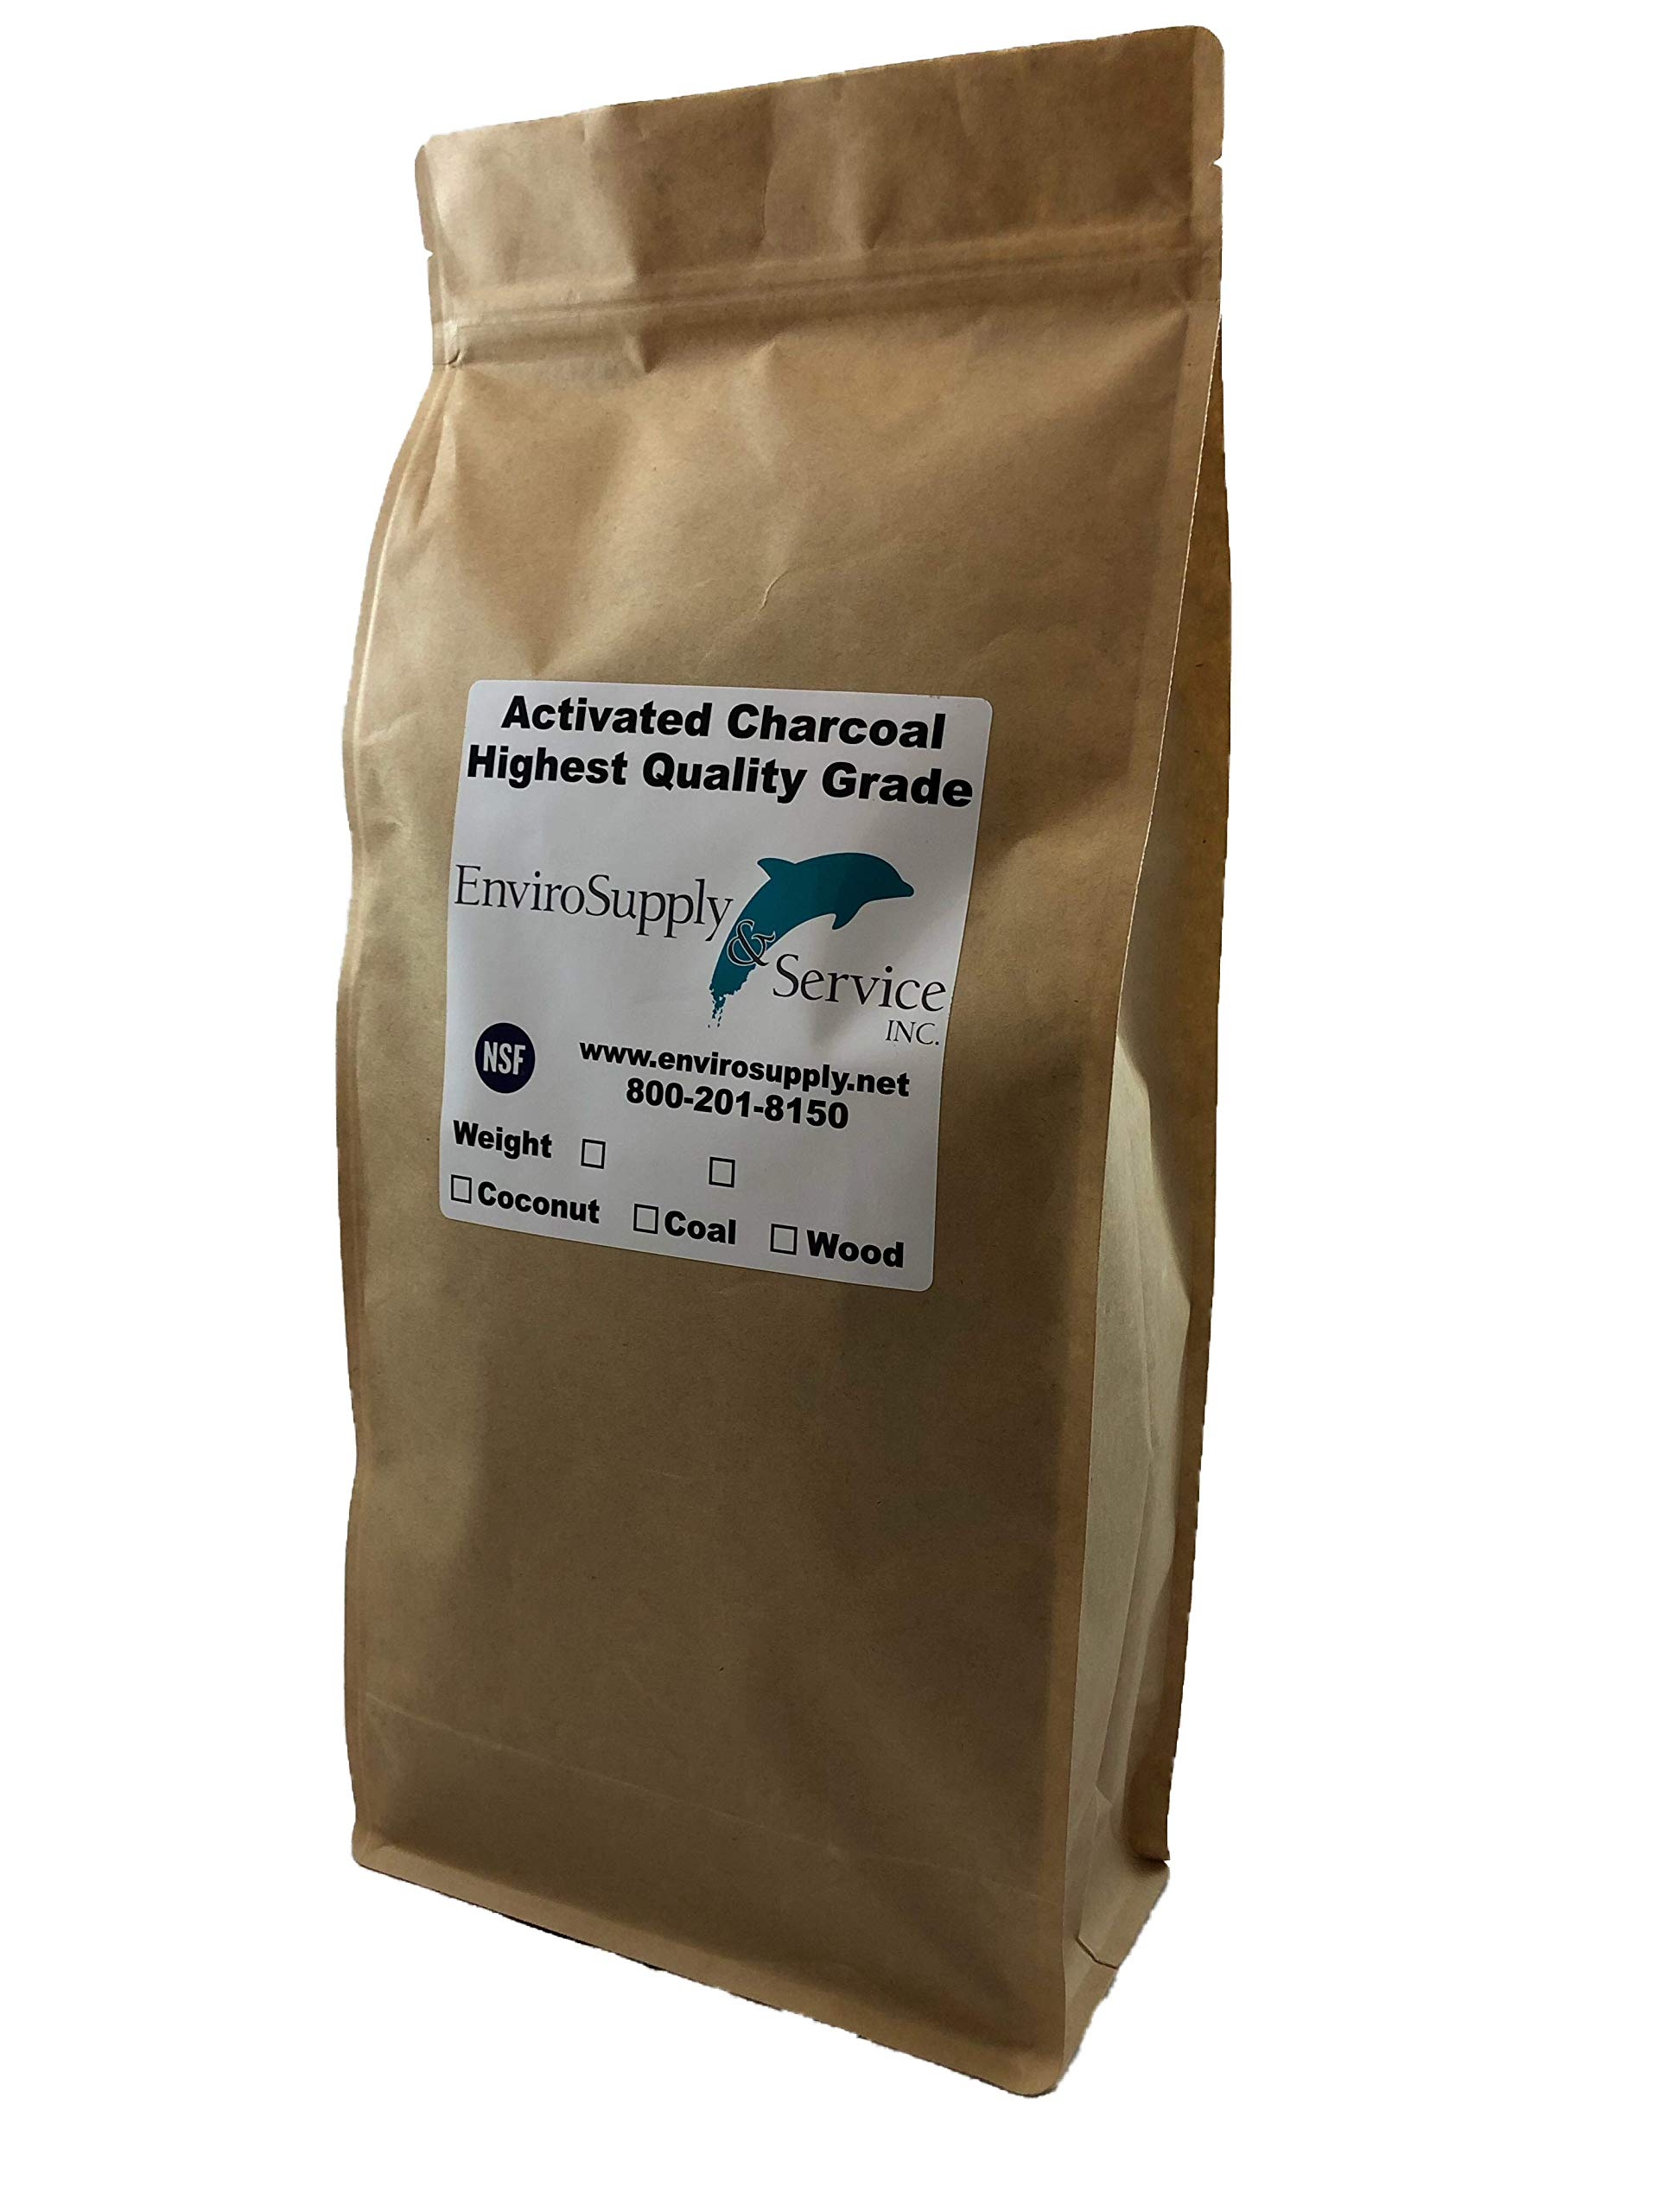 Powdered Hardwood Carbon for Oil Extraction (Decolorization) - Resealable 3 lb. Bag by EnviroSupply